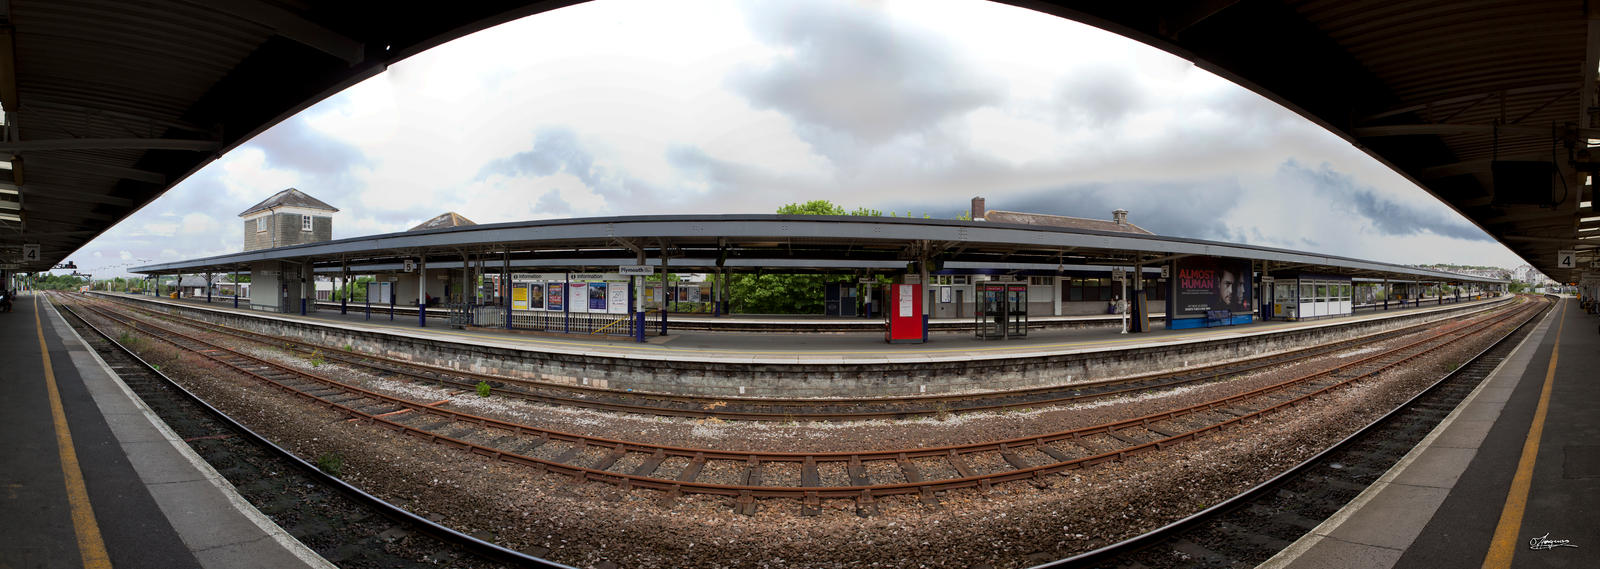 Plymouth station pano